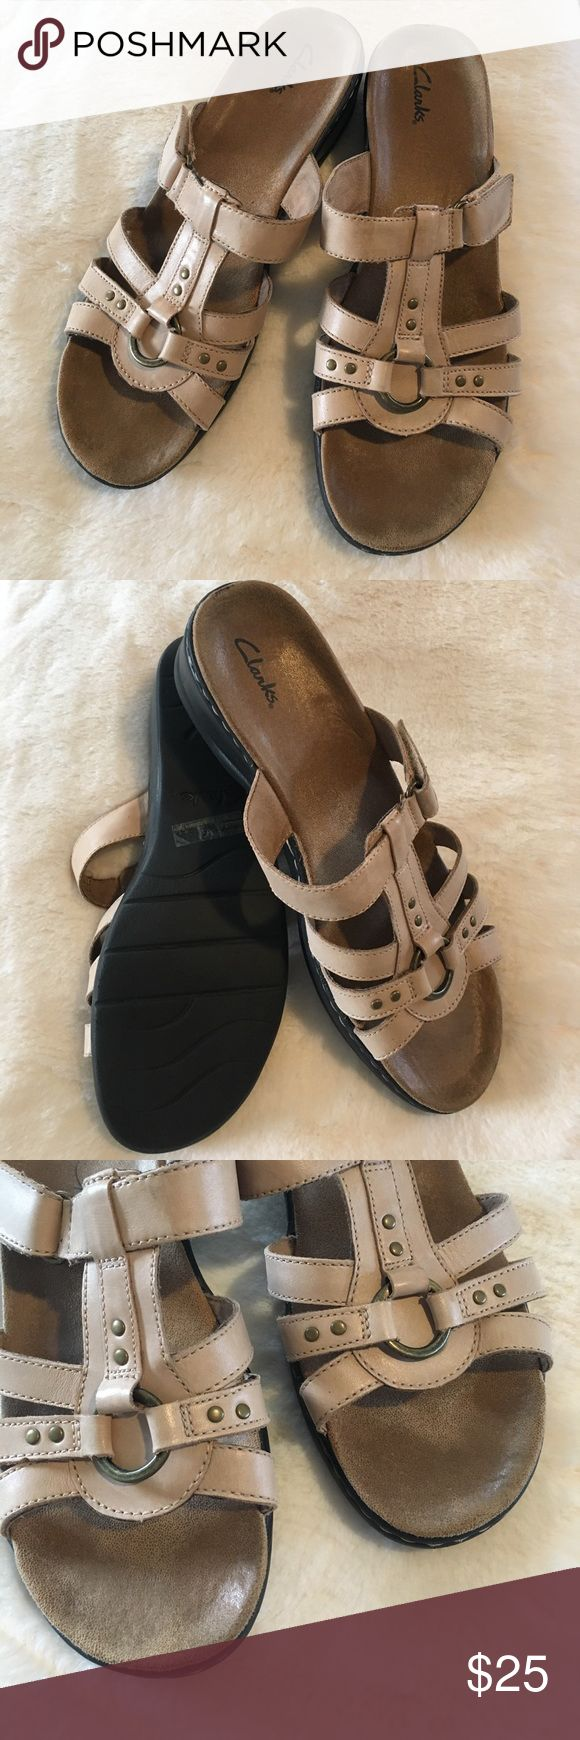 Clarks sandals beige size 11 Size 11 Clarks sandals in excellent condition. Worn once and doesn't fit my foot properly. My loss is your gain! Clarks Shoes Sandals